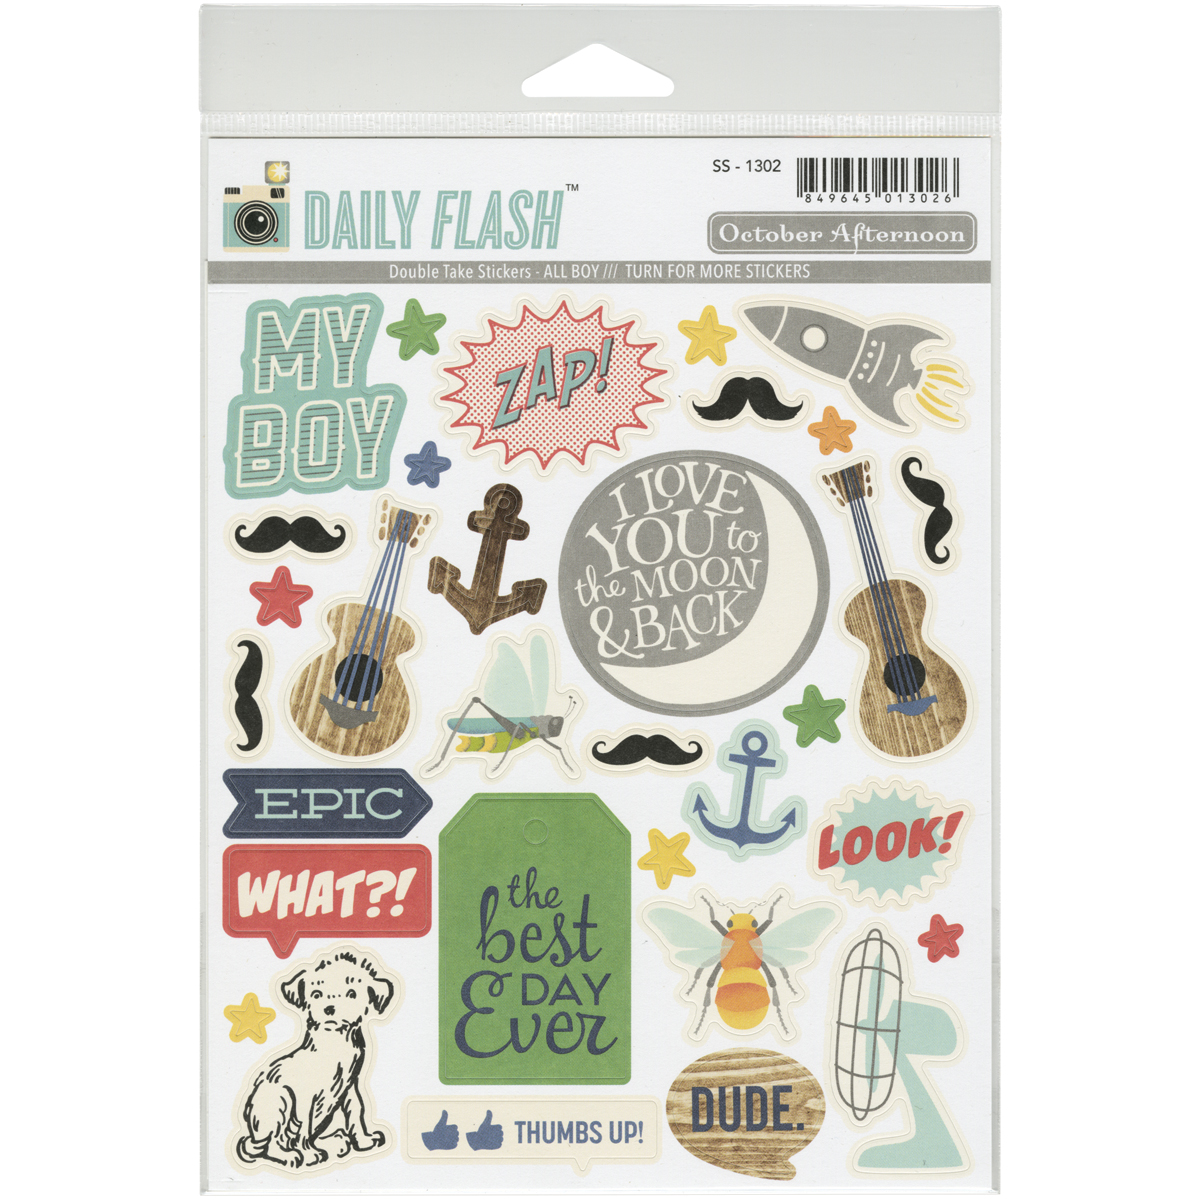 Daily Flash All Boy Double Take Stickers-Shapes & Labels